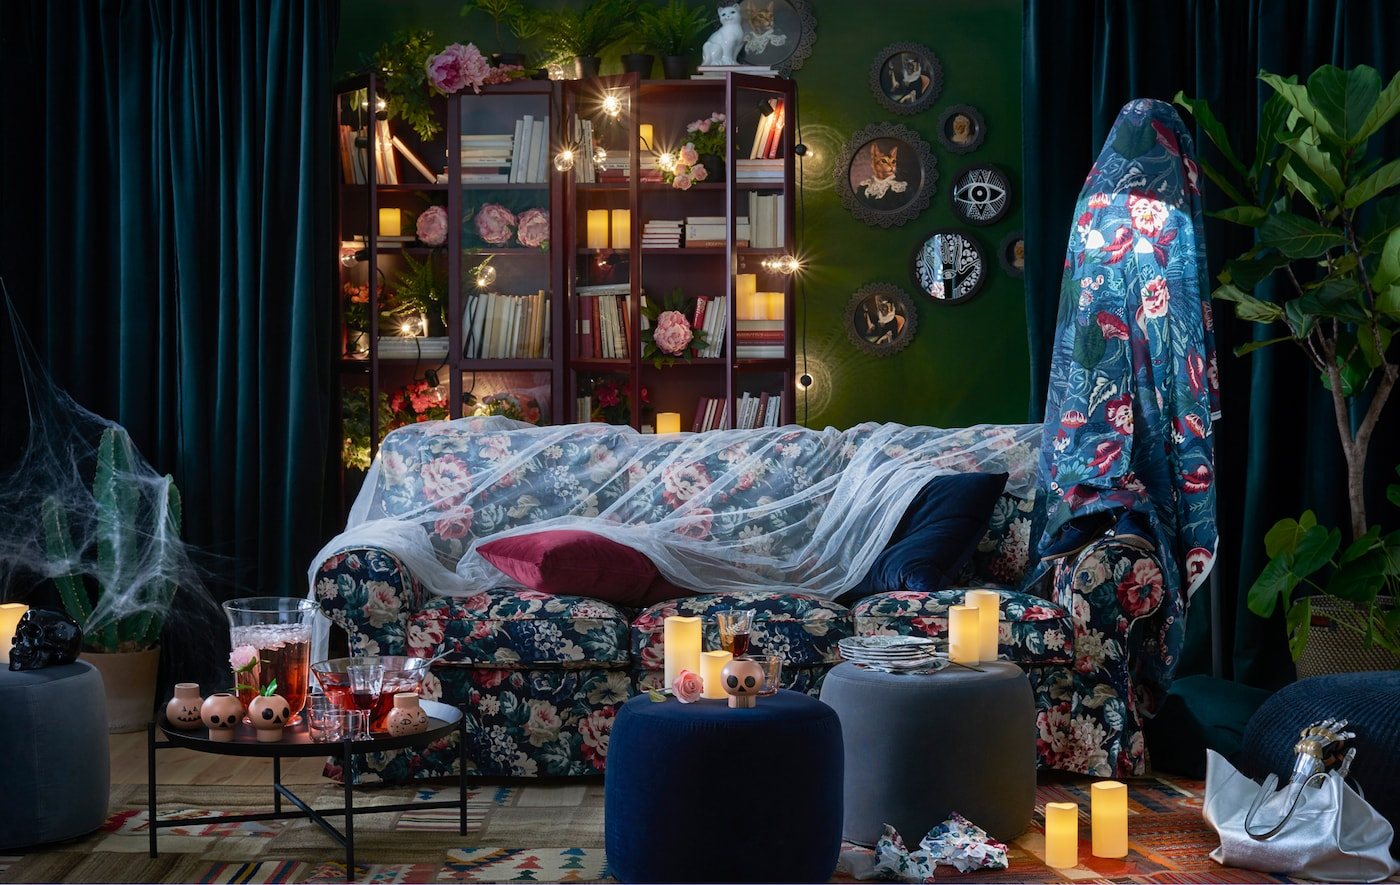 A living room that has been decorated to appear spooky, with cobwebs and candles and textiles draped over the sofa.